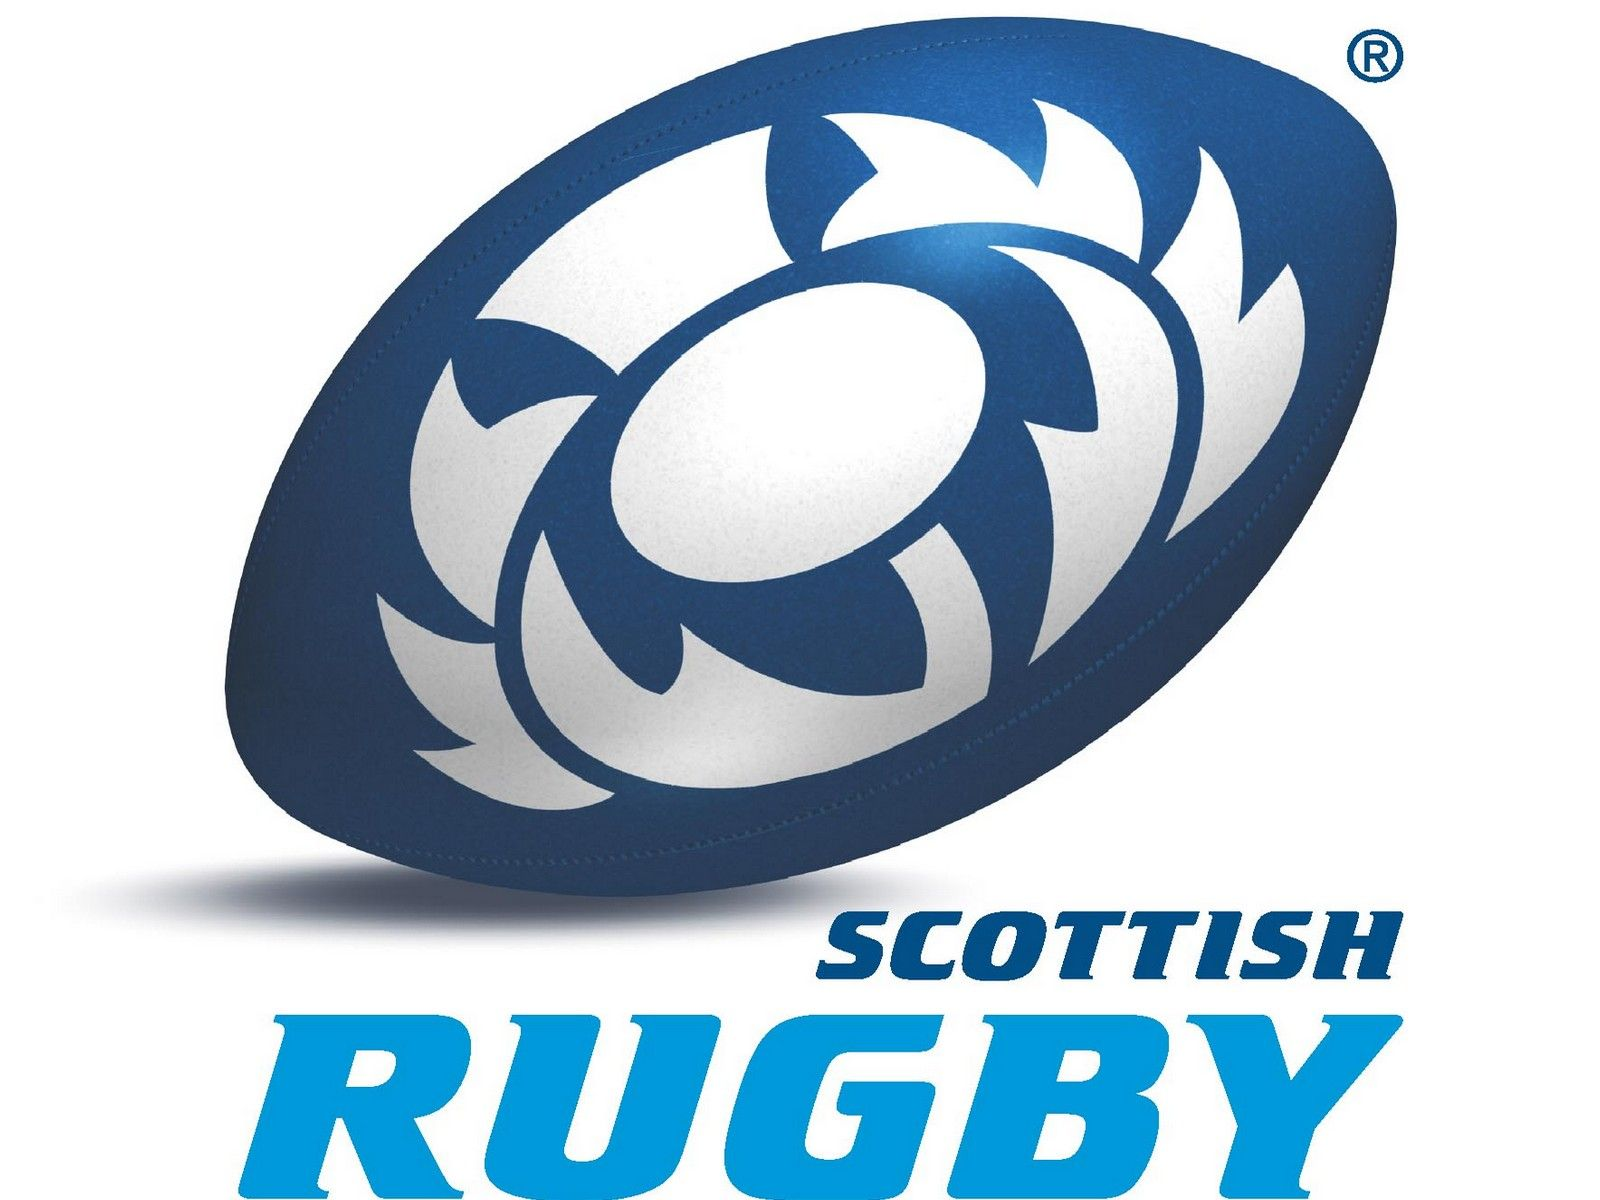 Scotish Rugby Federation Official Logo 1600x1200 Desktop Rugby Scottish Rugby Scotland Rugby Rugby Union